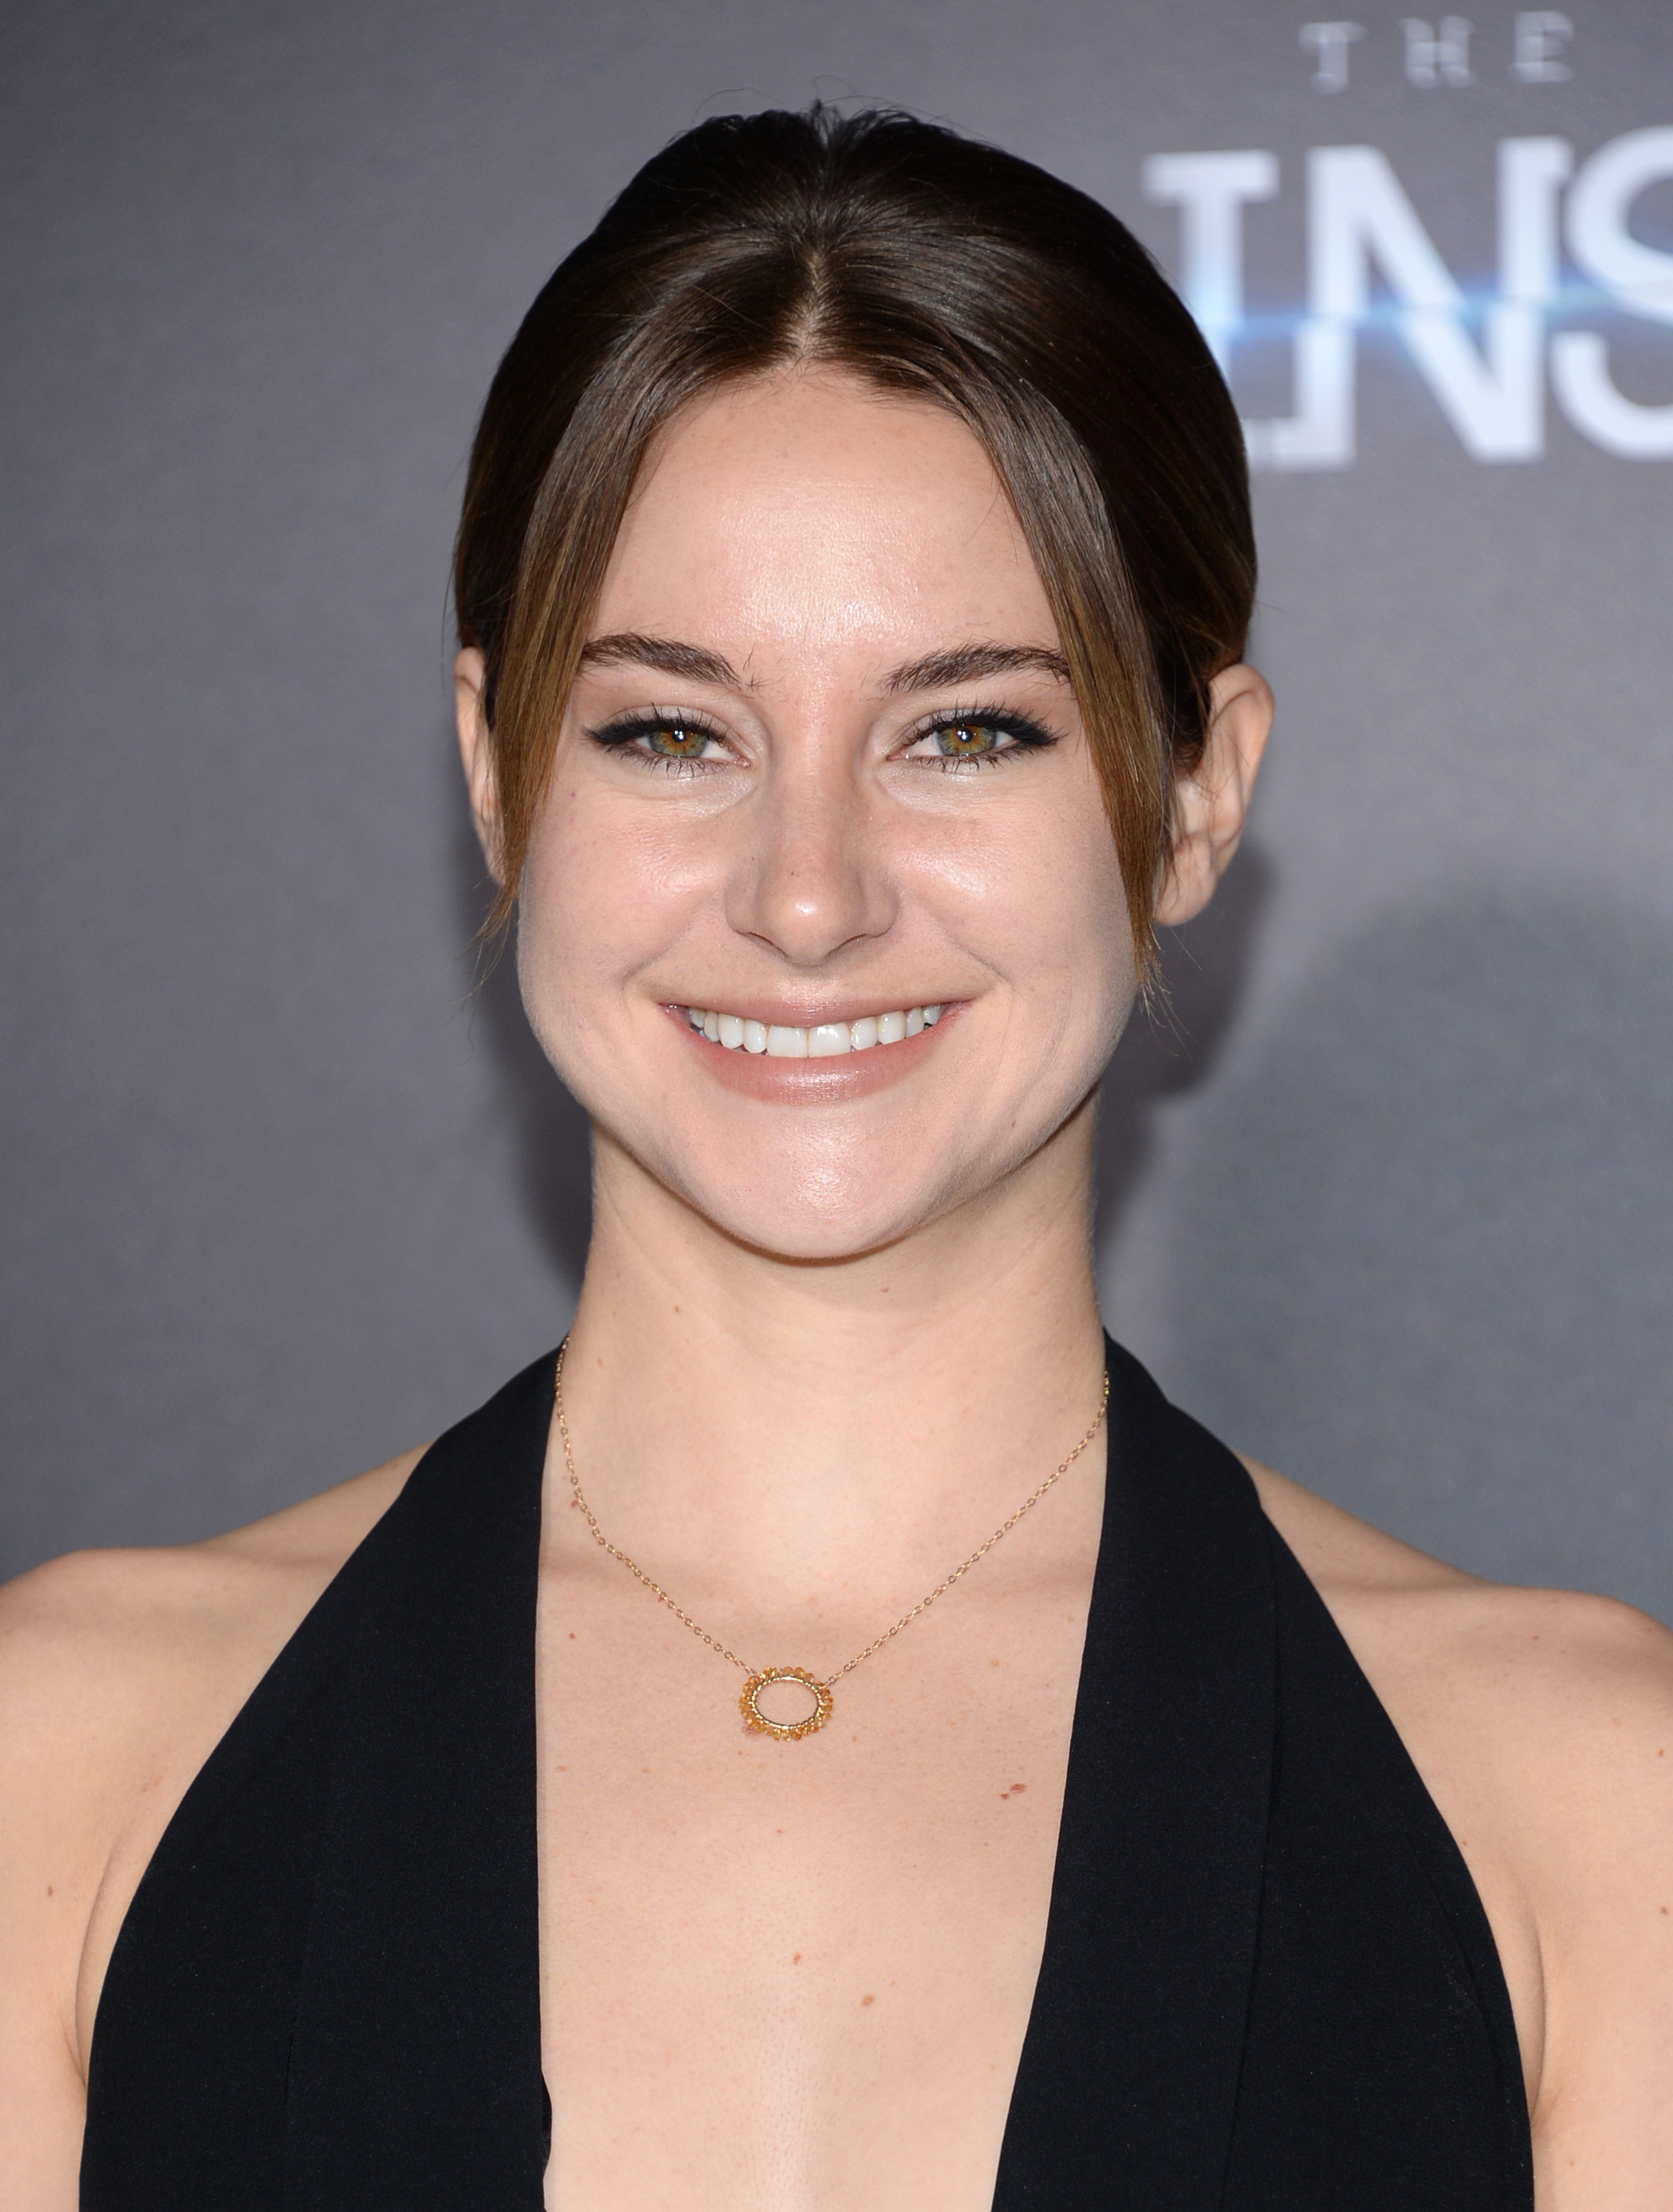 Shailene Woodley arrives at the premiere of  The Divergent Series: Insurgent  in New York City on March 16, 2015.